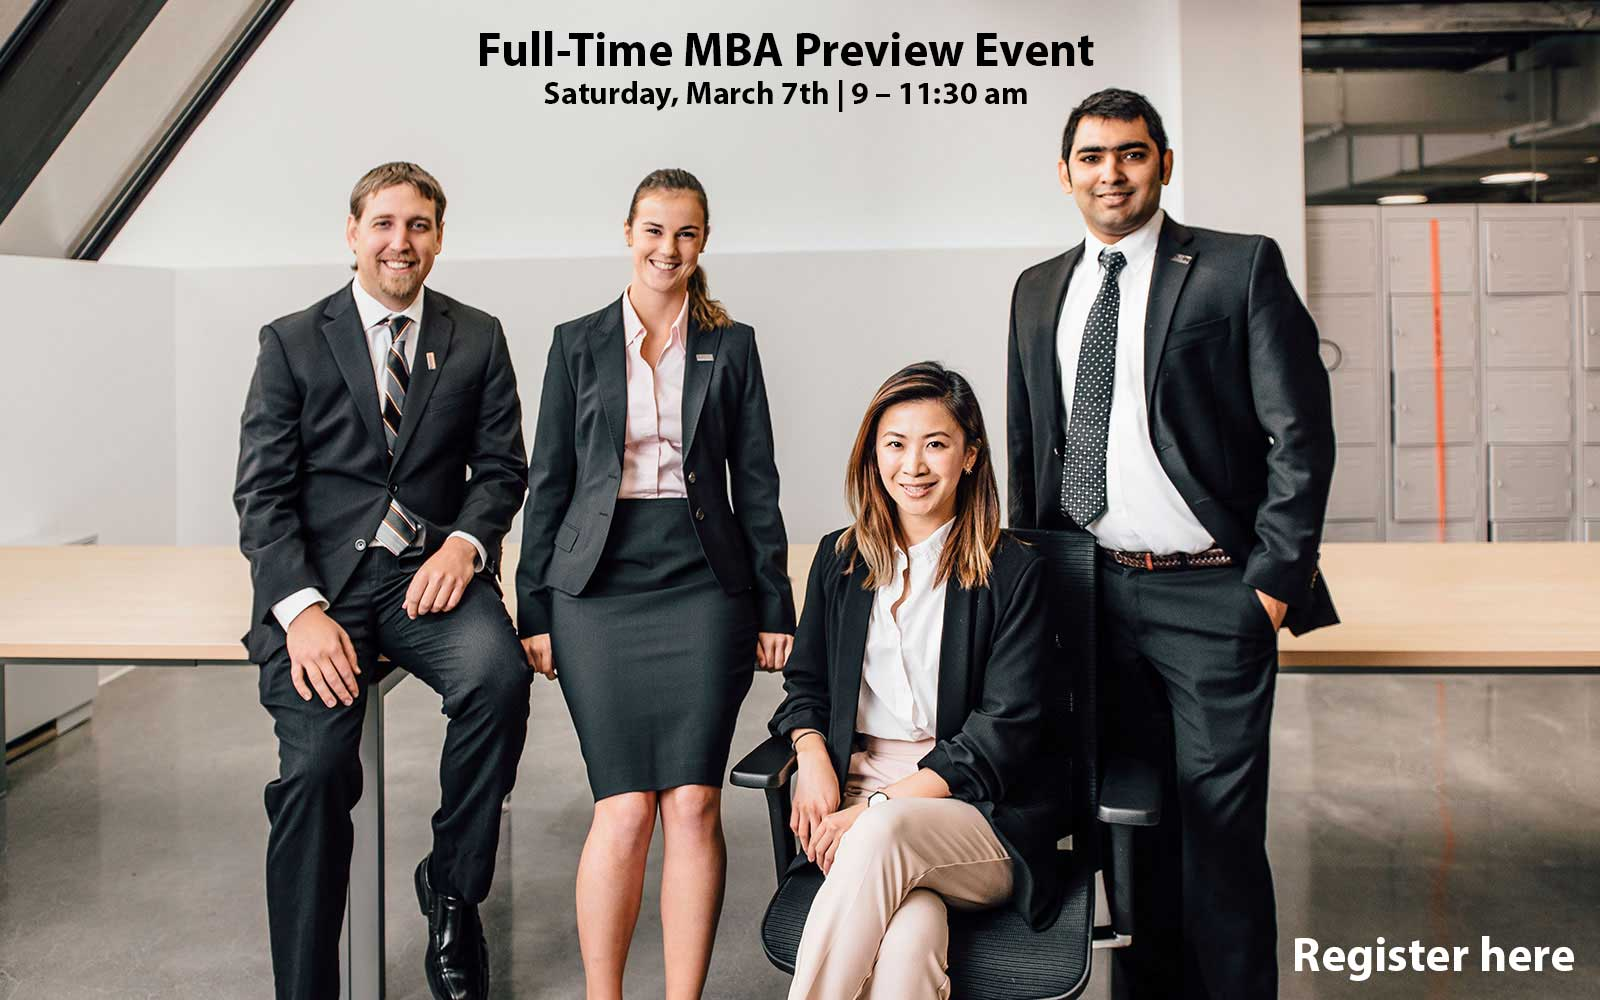 Full-Time MBA Preview Event March 7 from 9-11:30 am